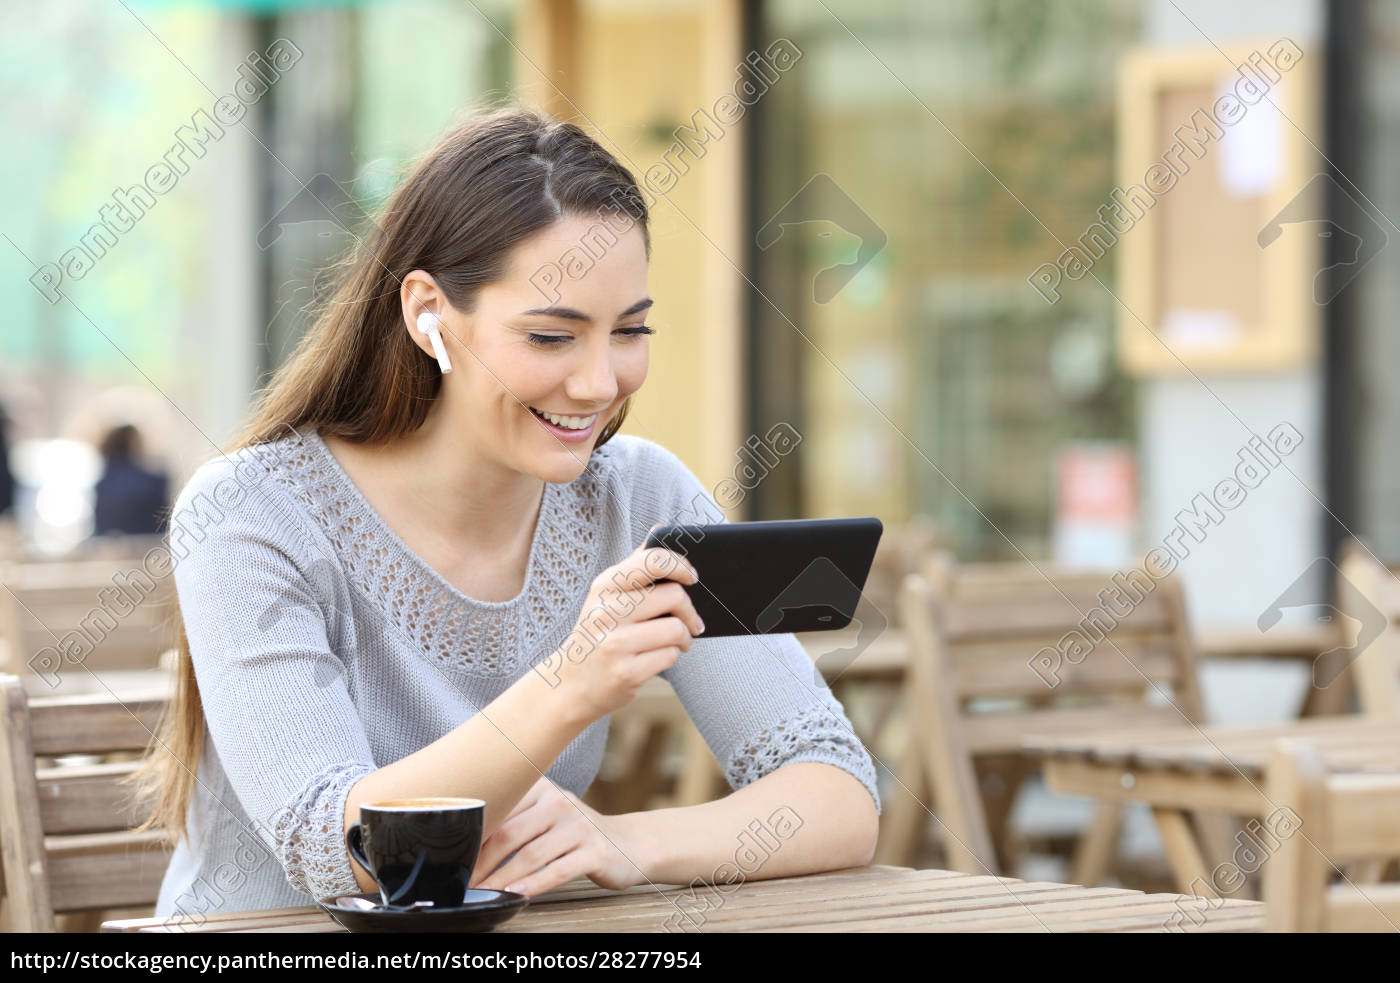 happy, woman, with, earbuds, watching, video - 28277954